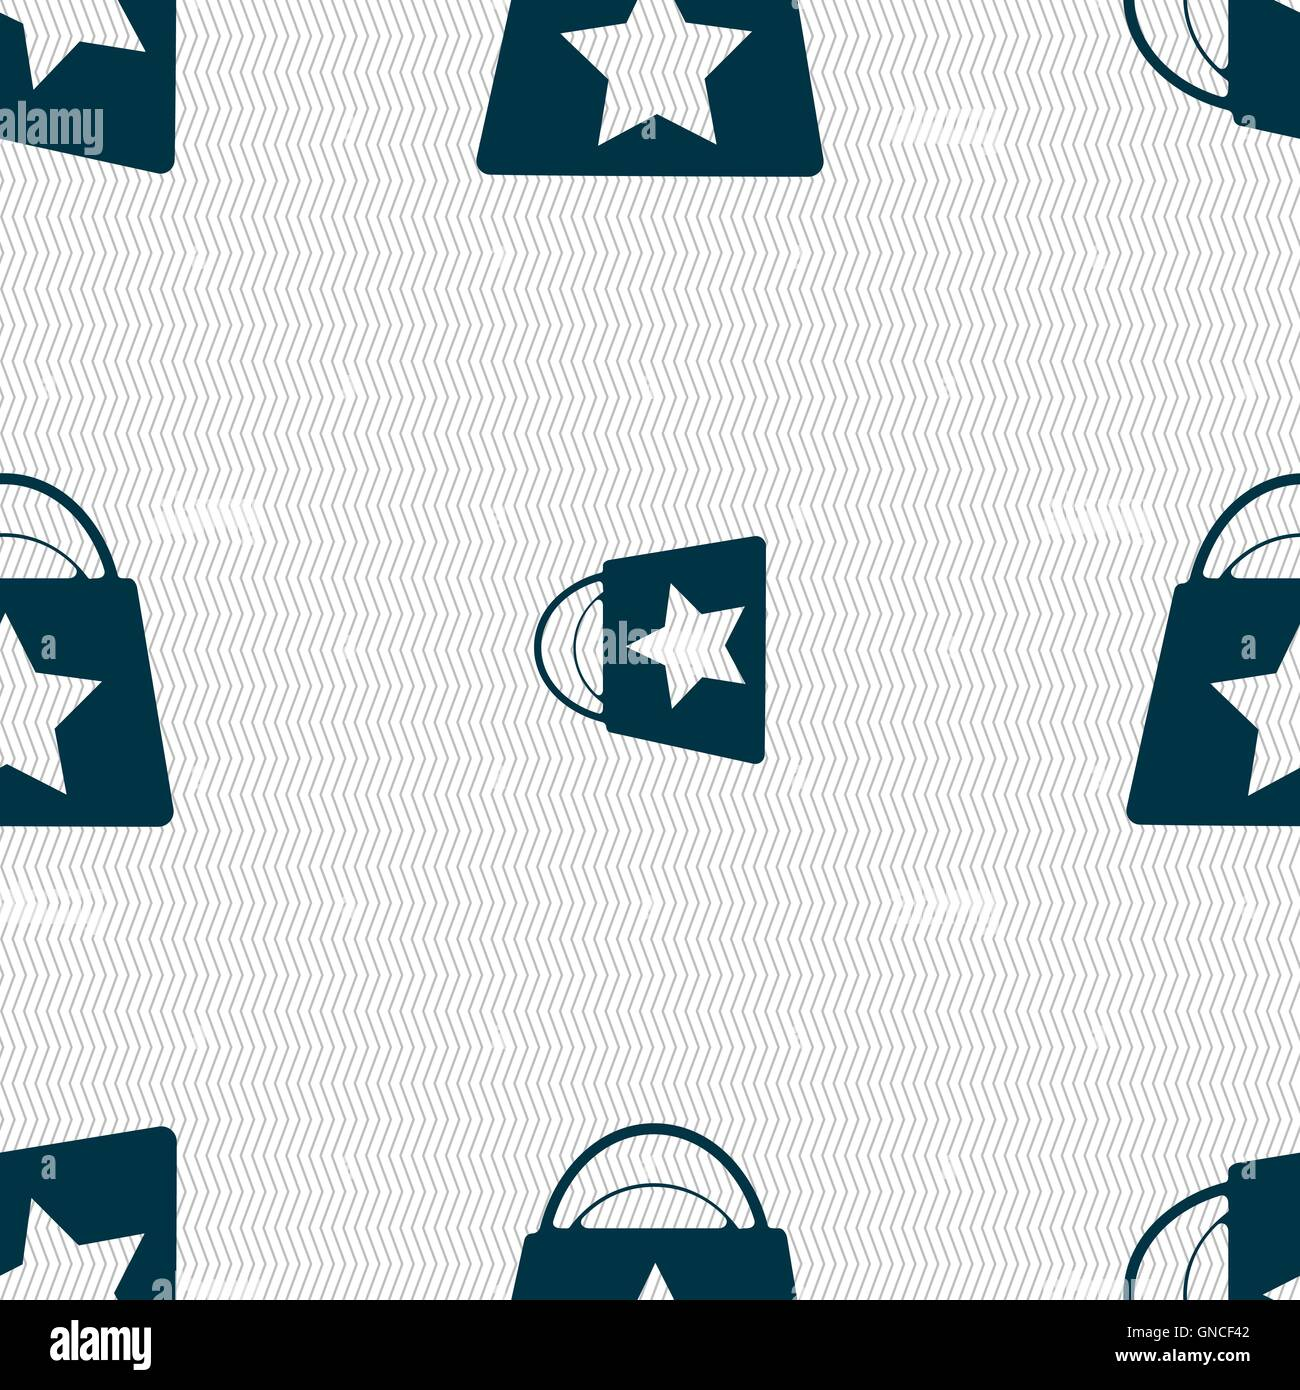 Shopping bag icon sign  Seamless pattern with geometric